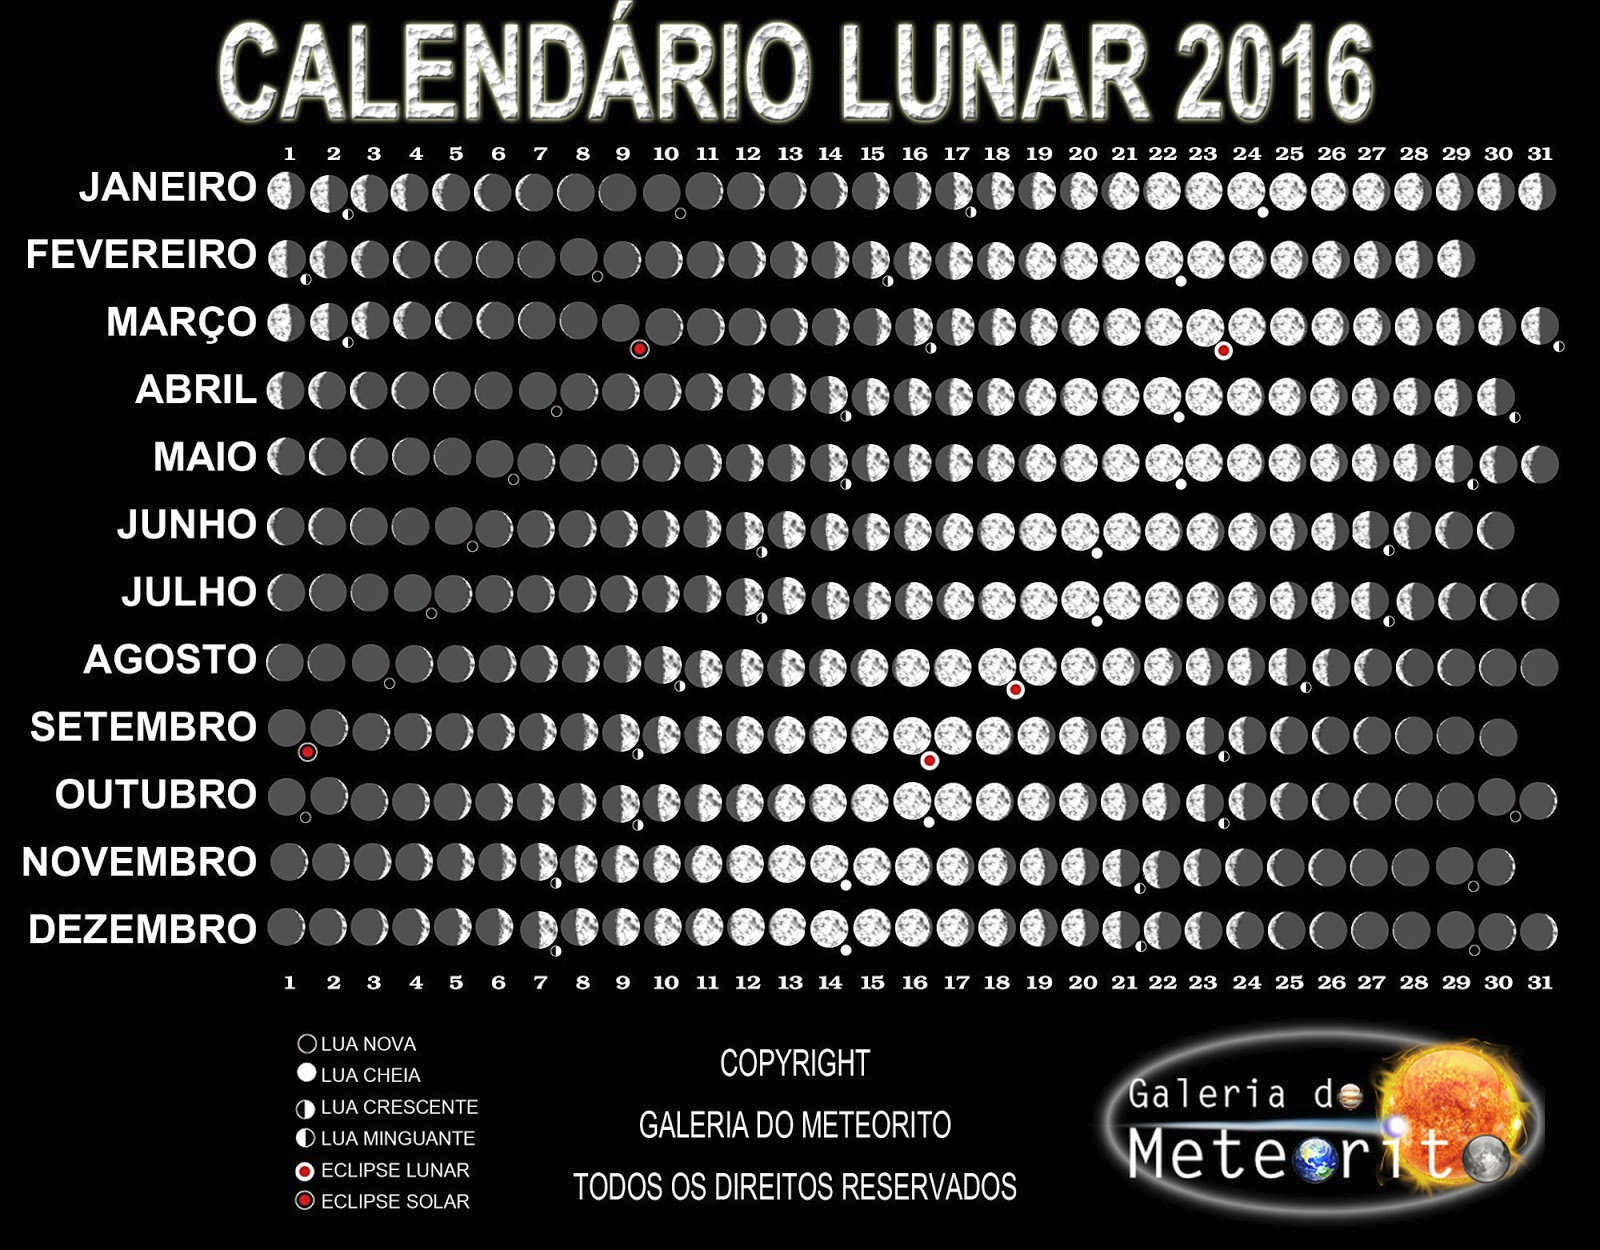 Calend rio lunar galeria do meteorito for Calendario de luna creciente 2016